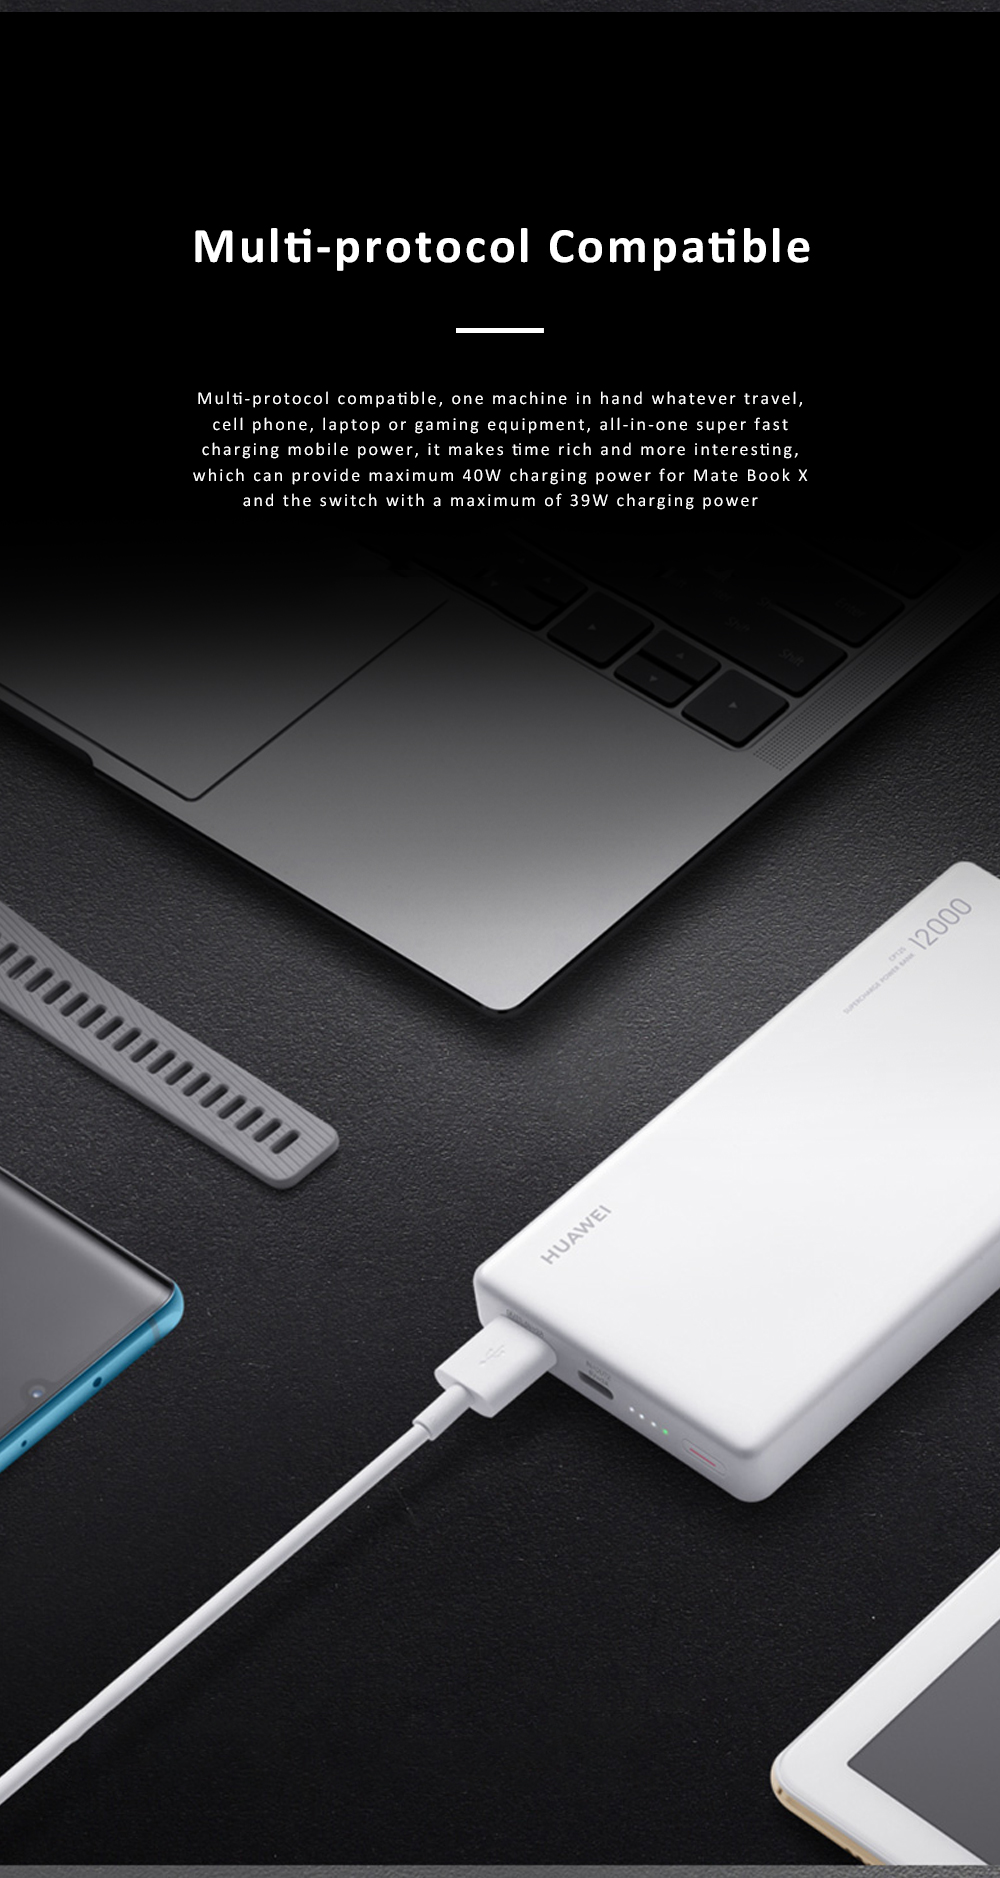 Huawei Mobile Phone Power Bank Wireless Portable Charger 12000 mAh 40W External Battery Pack Fast Charge Treasure 3